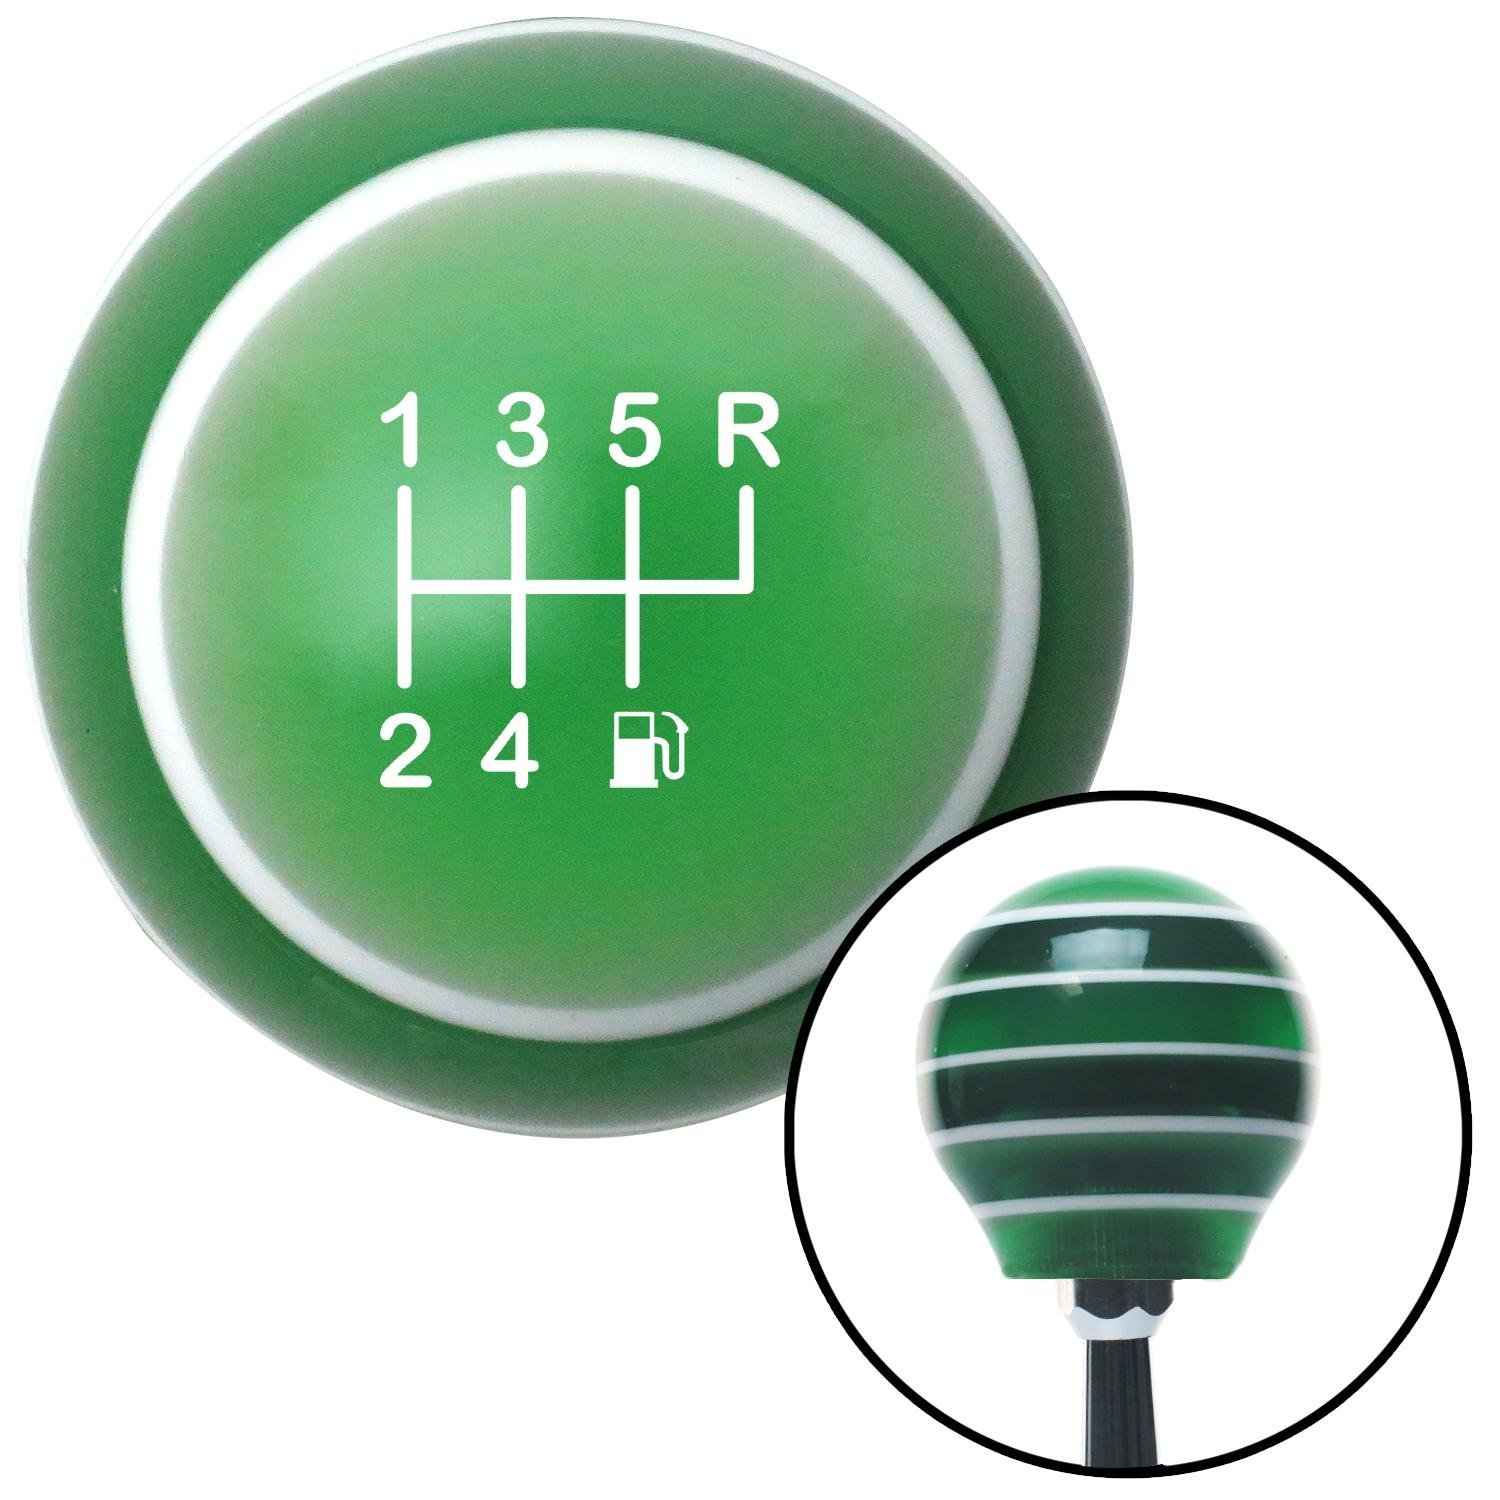 American Shifter 275640 Shift Knob White 6 Speed Shift Pattern - Gas 26 Green Stripe with M16 x 1.5 Insert